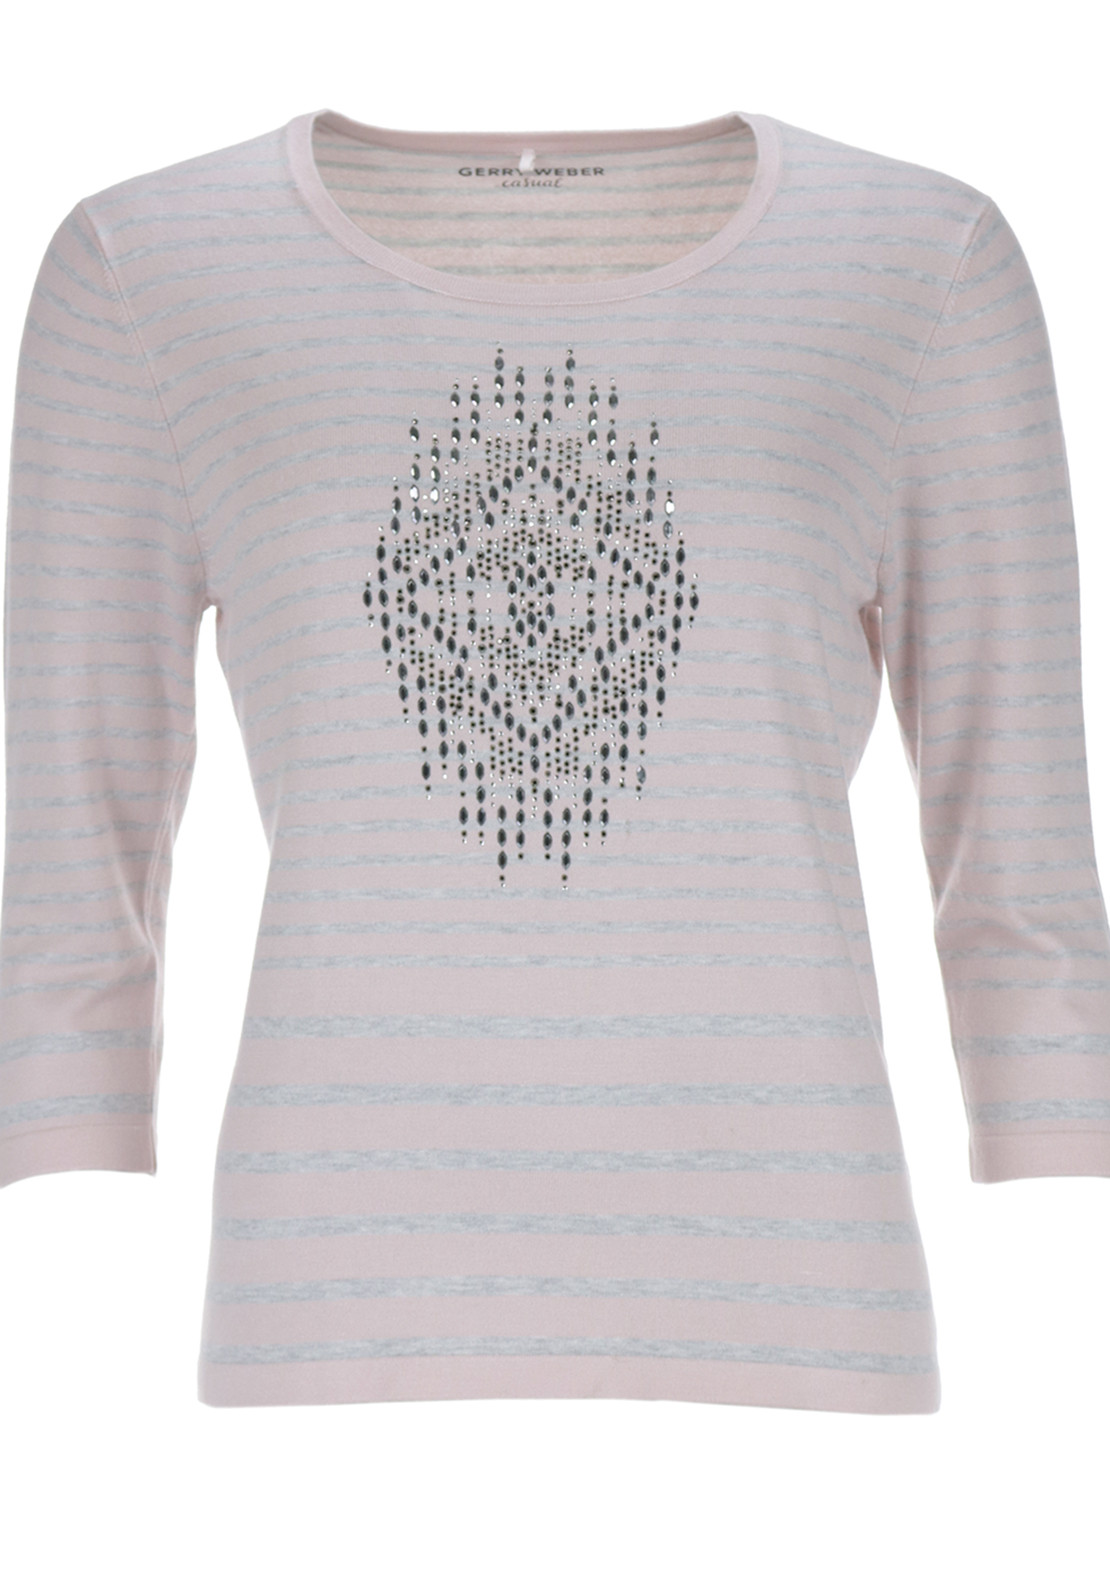 Gerry Weber Relaxed Fit Striped and Studded Detail Knitwear Jumper, Pink and Grey